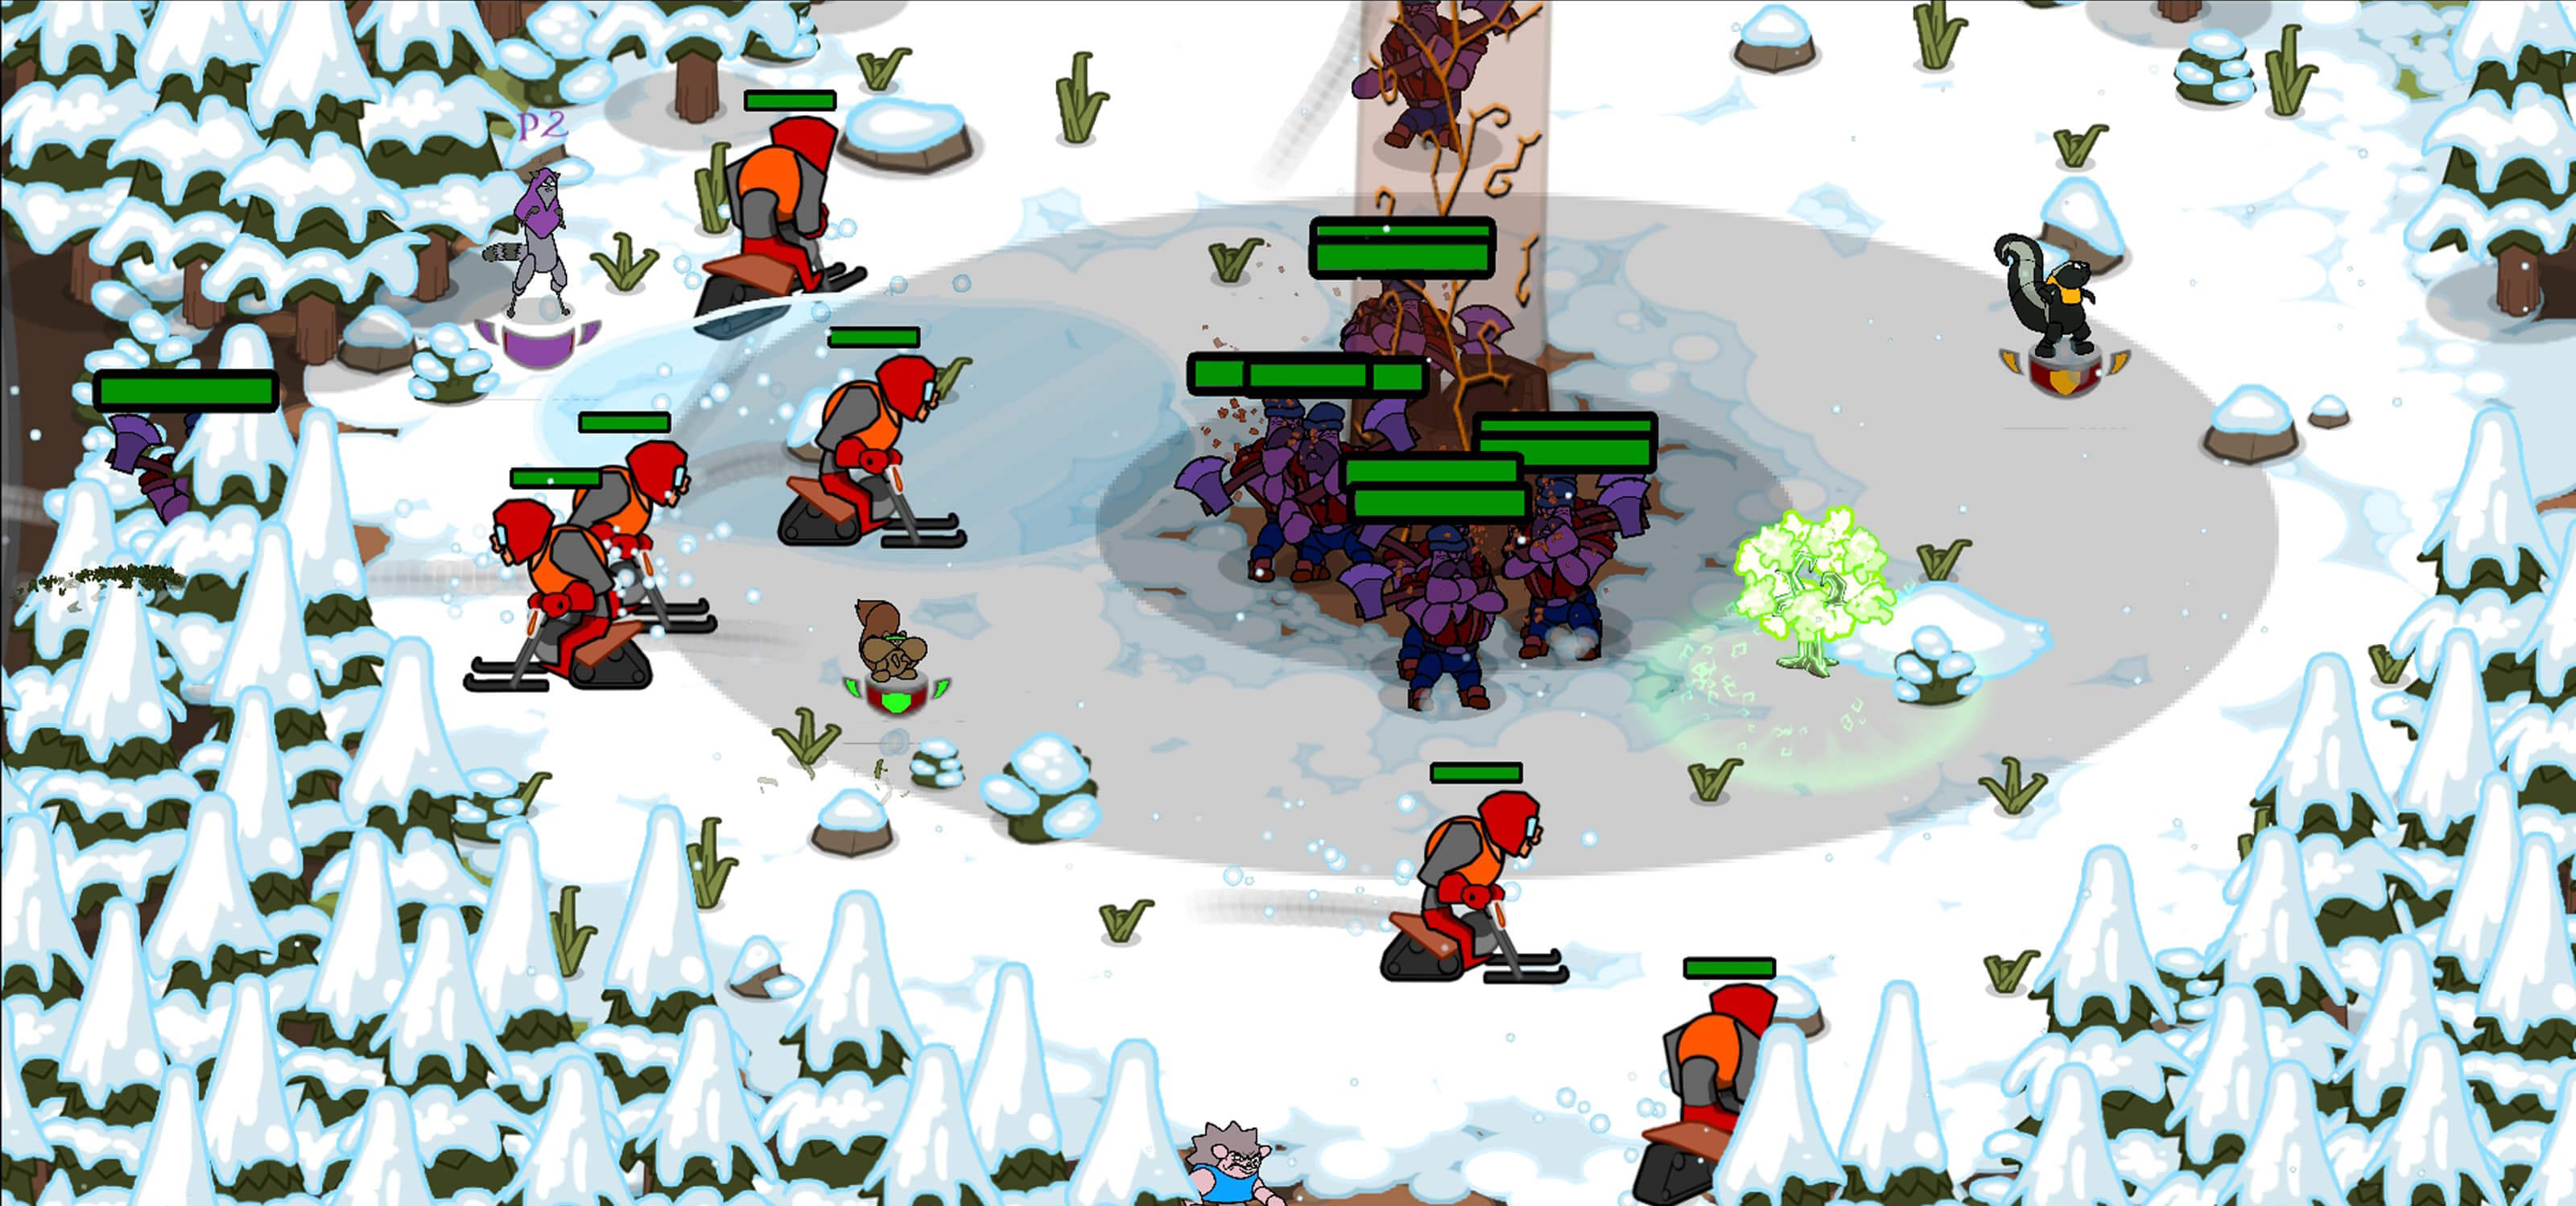 Screenshot featuring gameplay in a snowy forest from DigiPen student game N.U.T.S.: Forest FriendZ